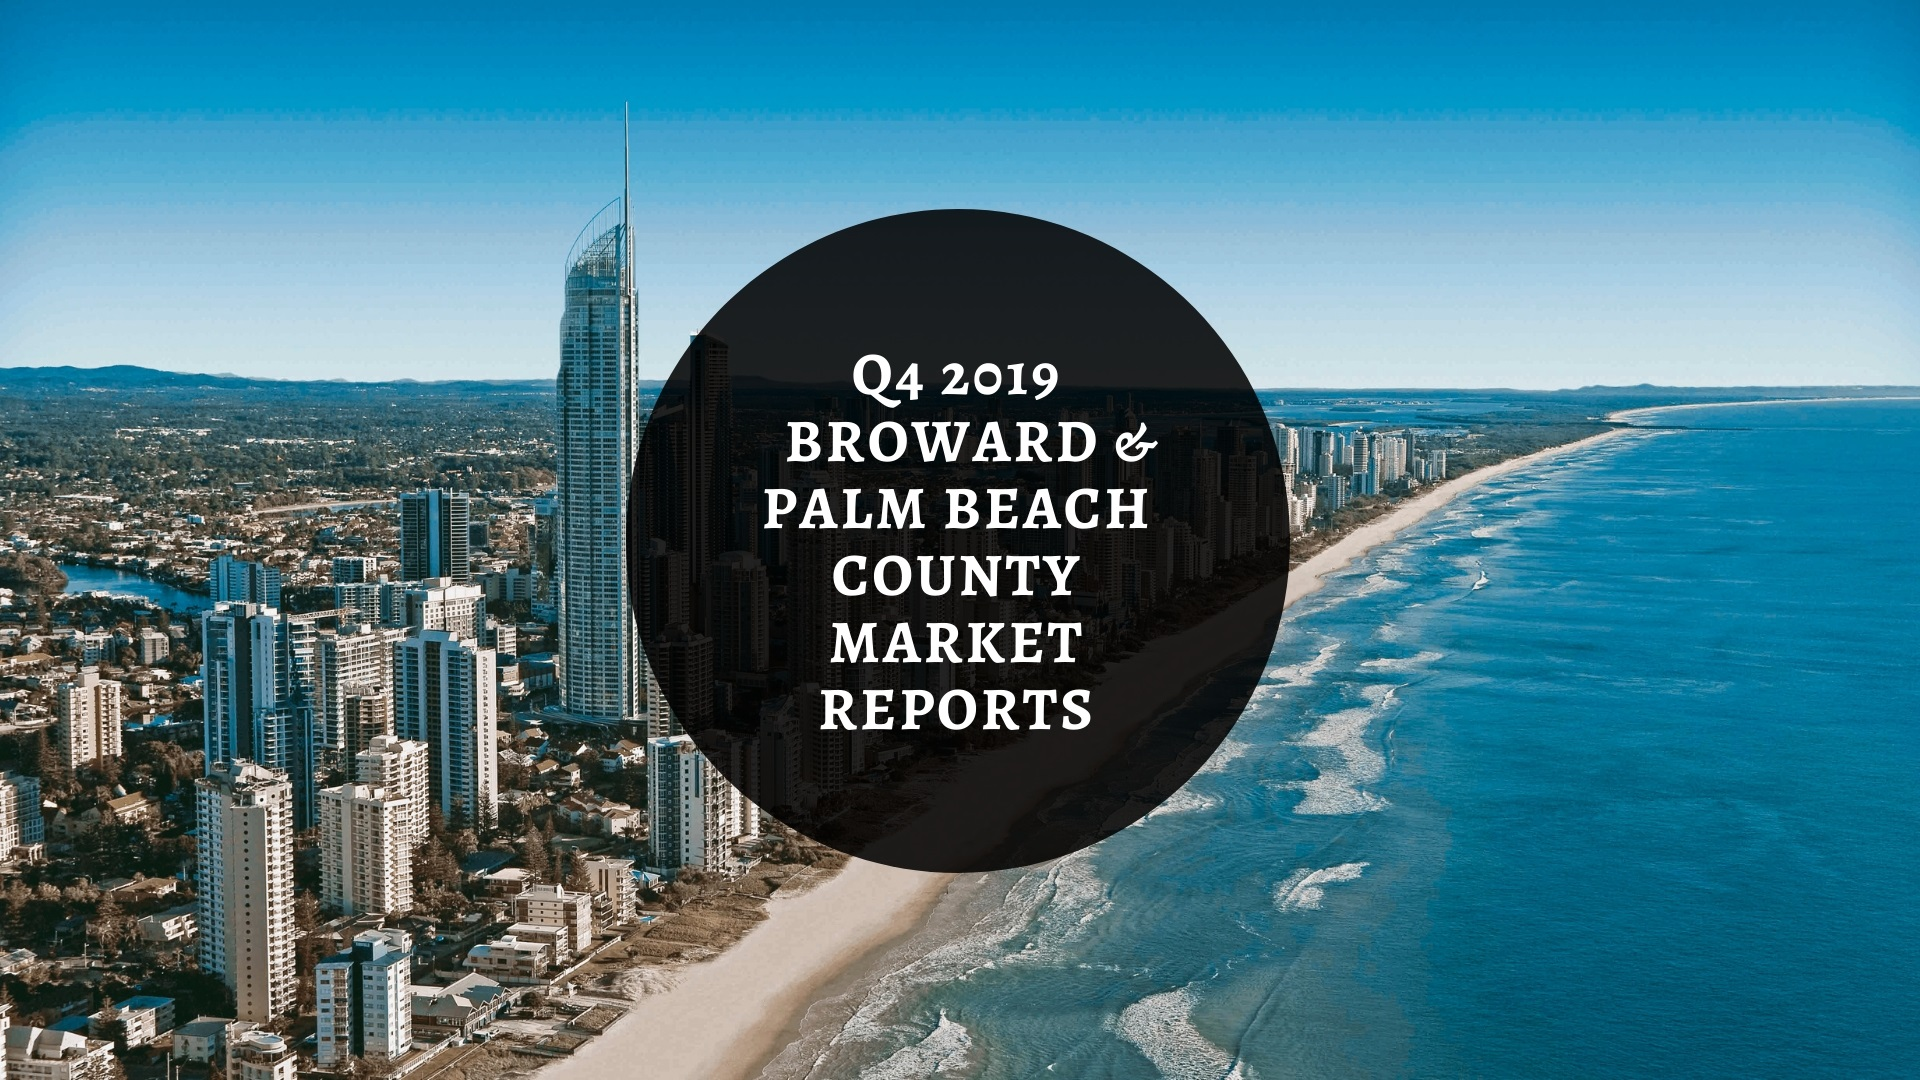 We Are Pleased To Provide You With This Copy Of Berger Commercial Realty Corp.'s 2019 Q4 Broward And Palm Beach County Market Reports For The Office And Industrial Real Estate Markets